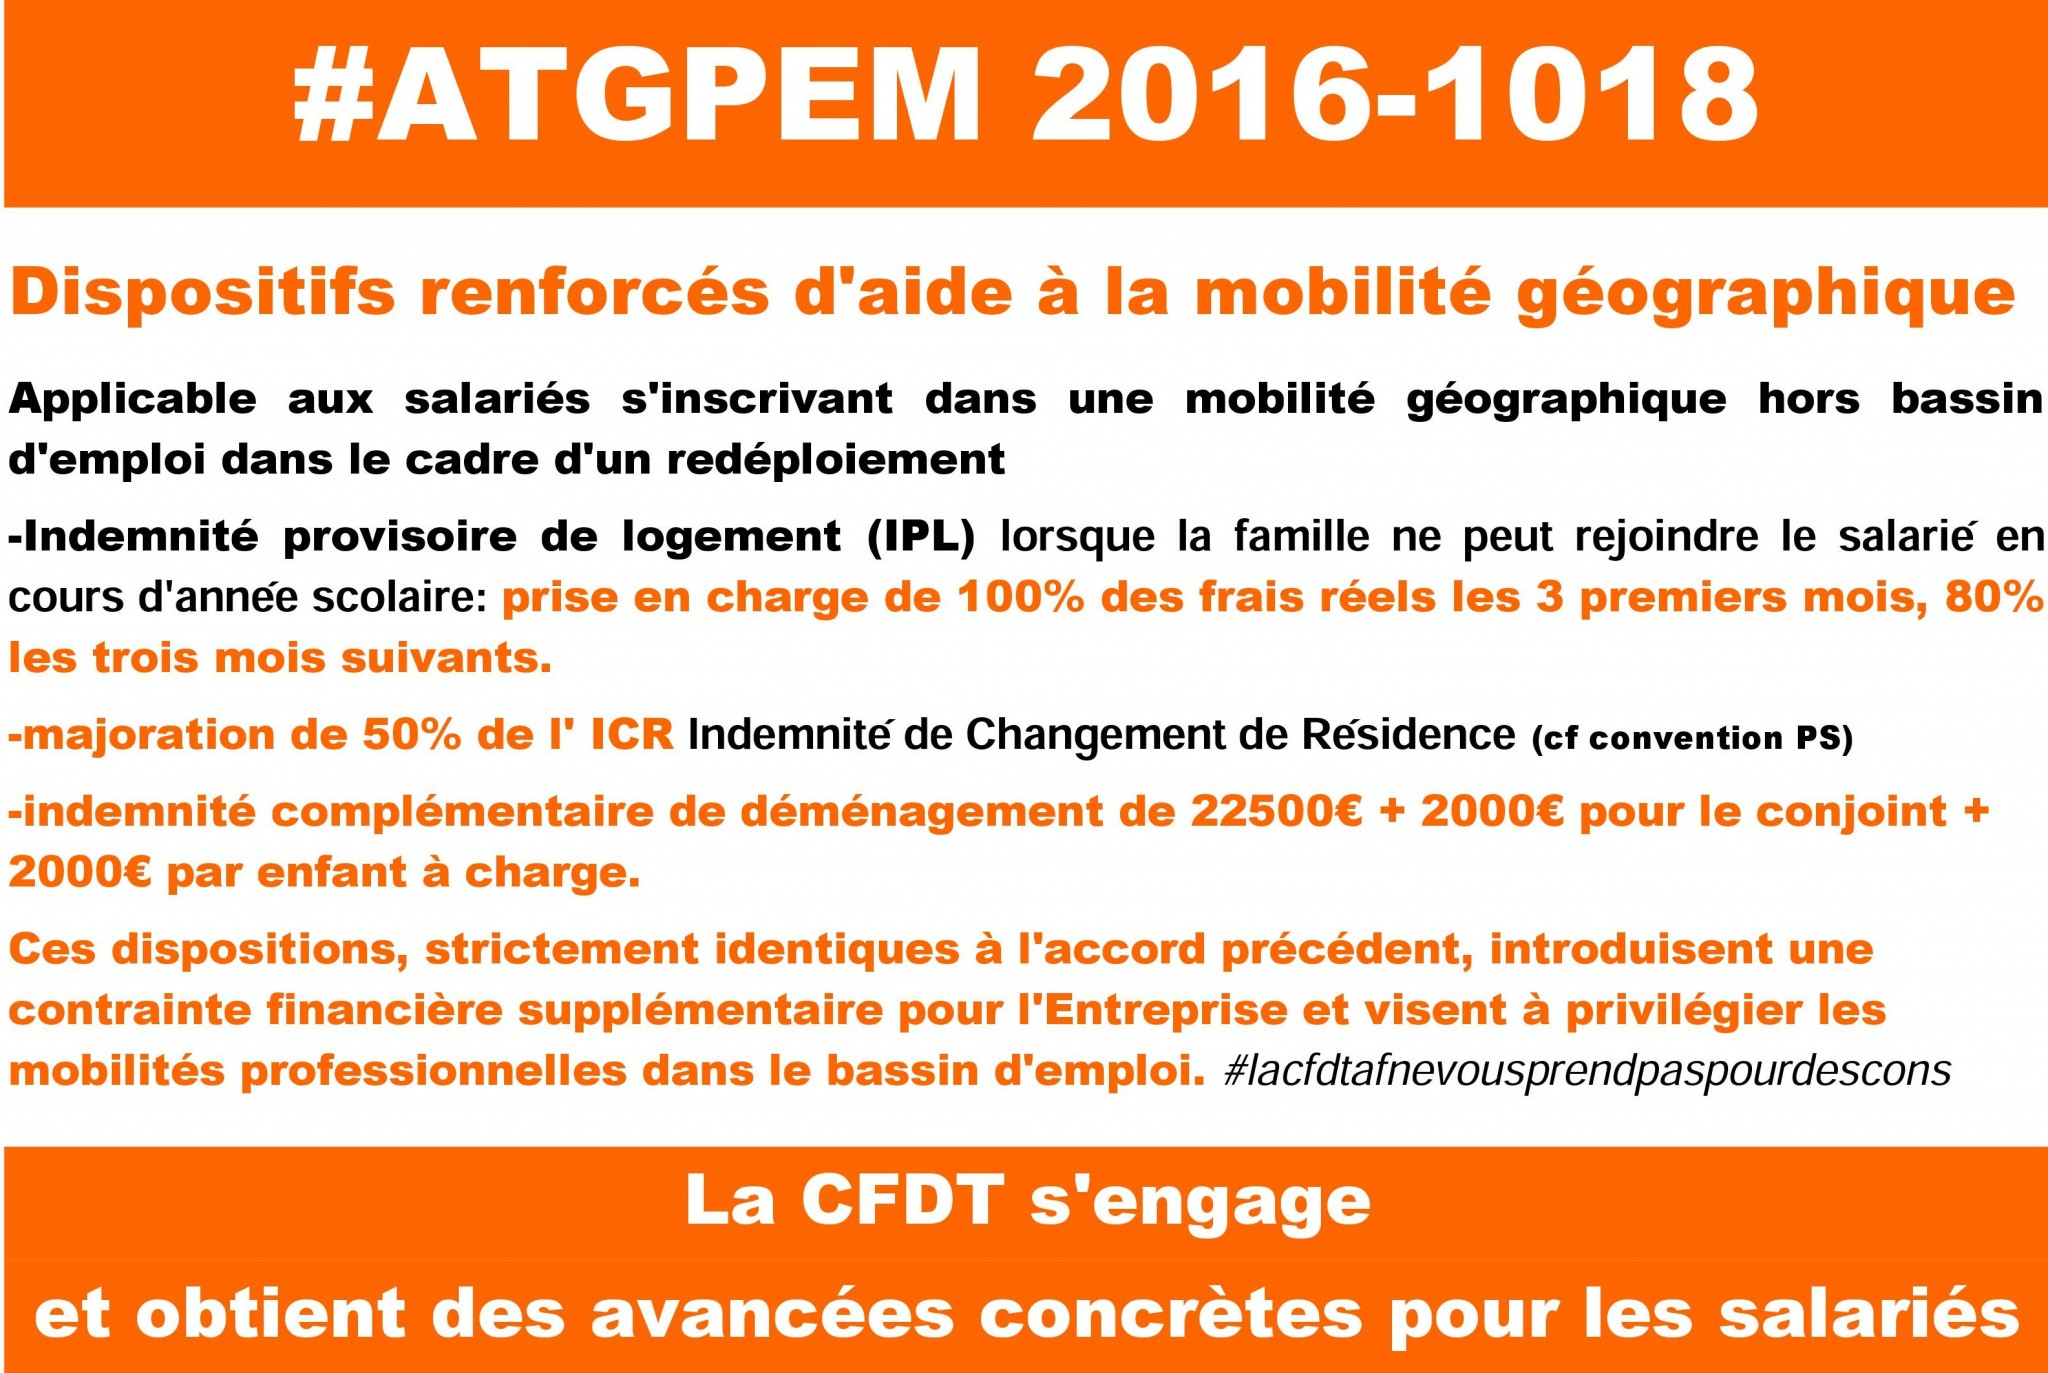 communication ATGPEM 2016 7